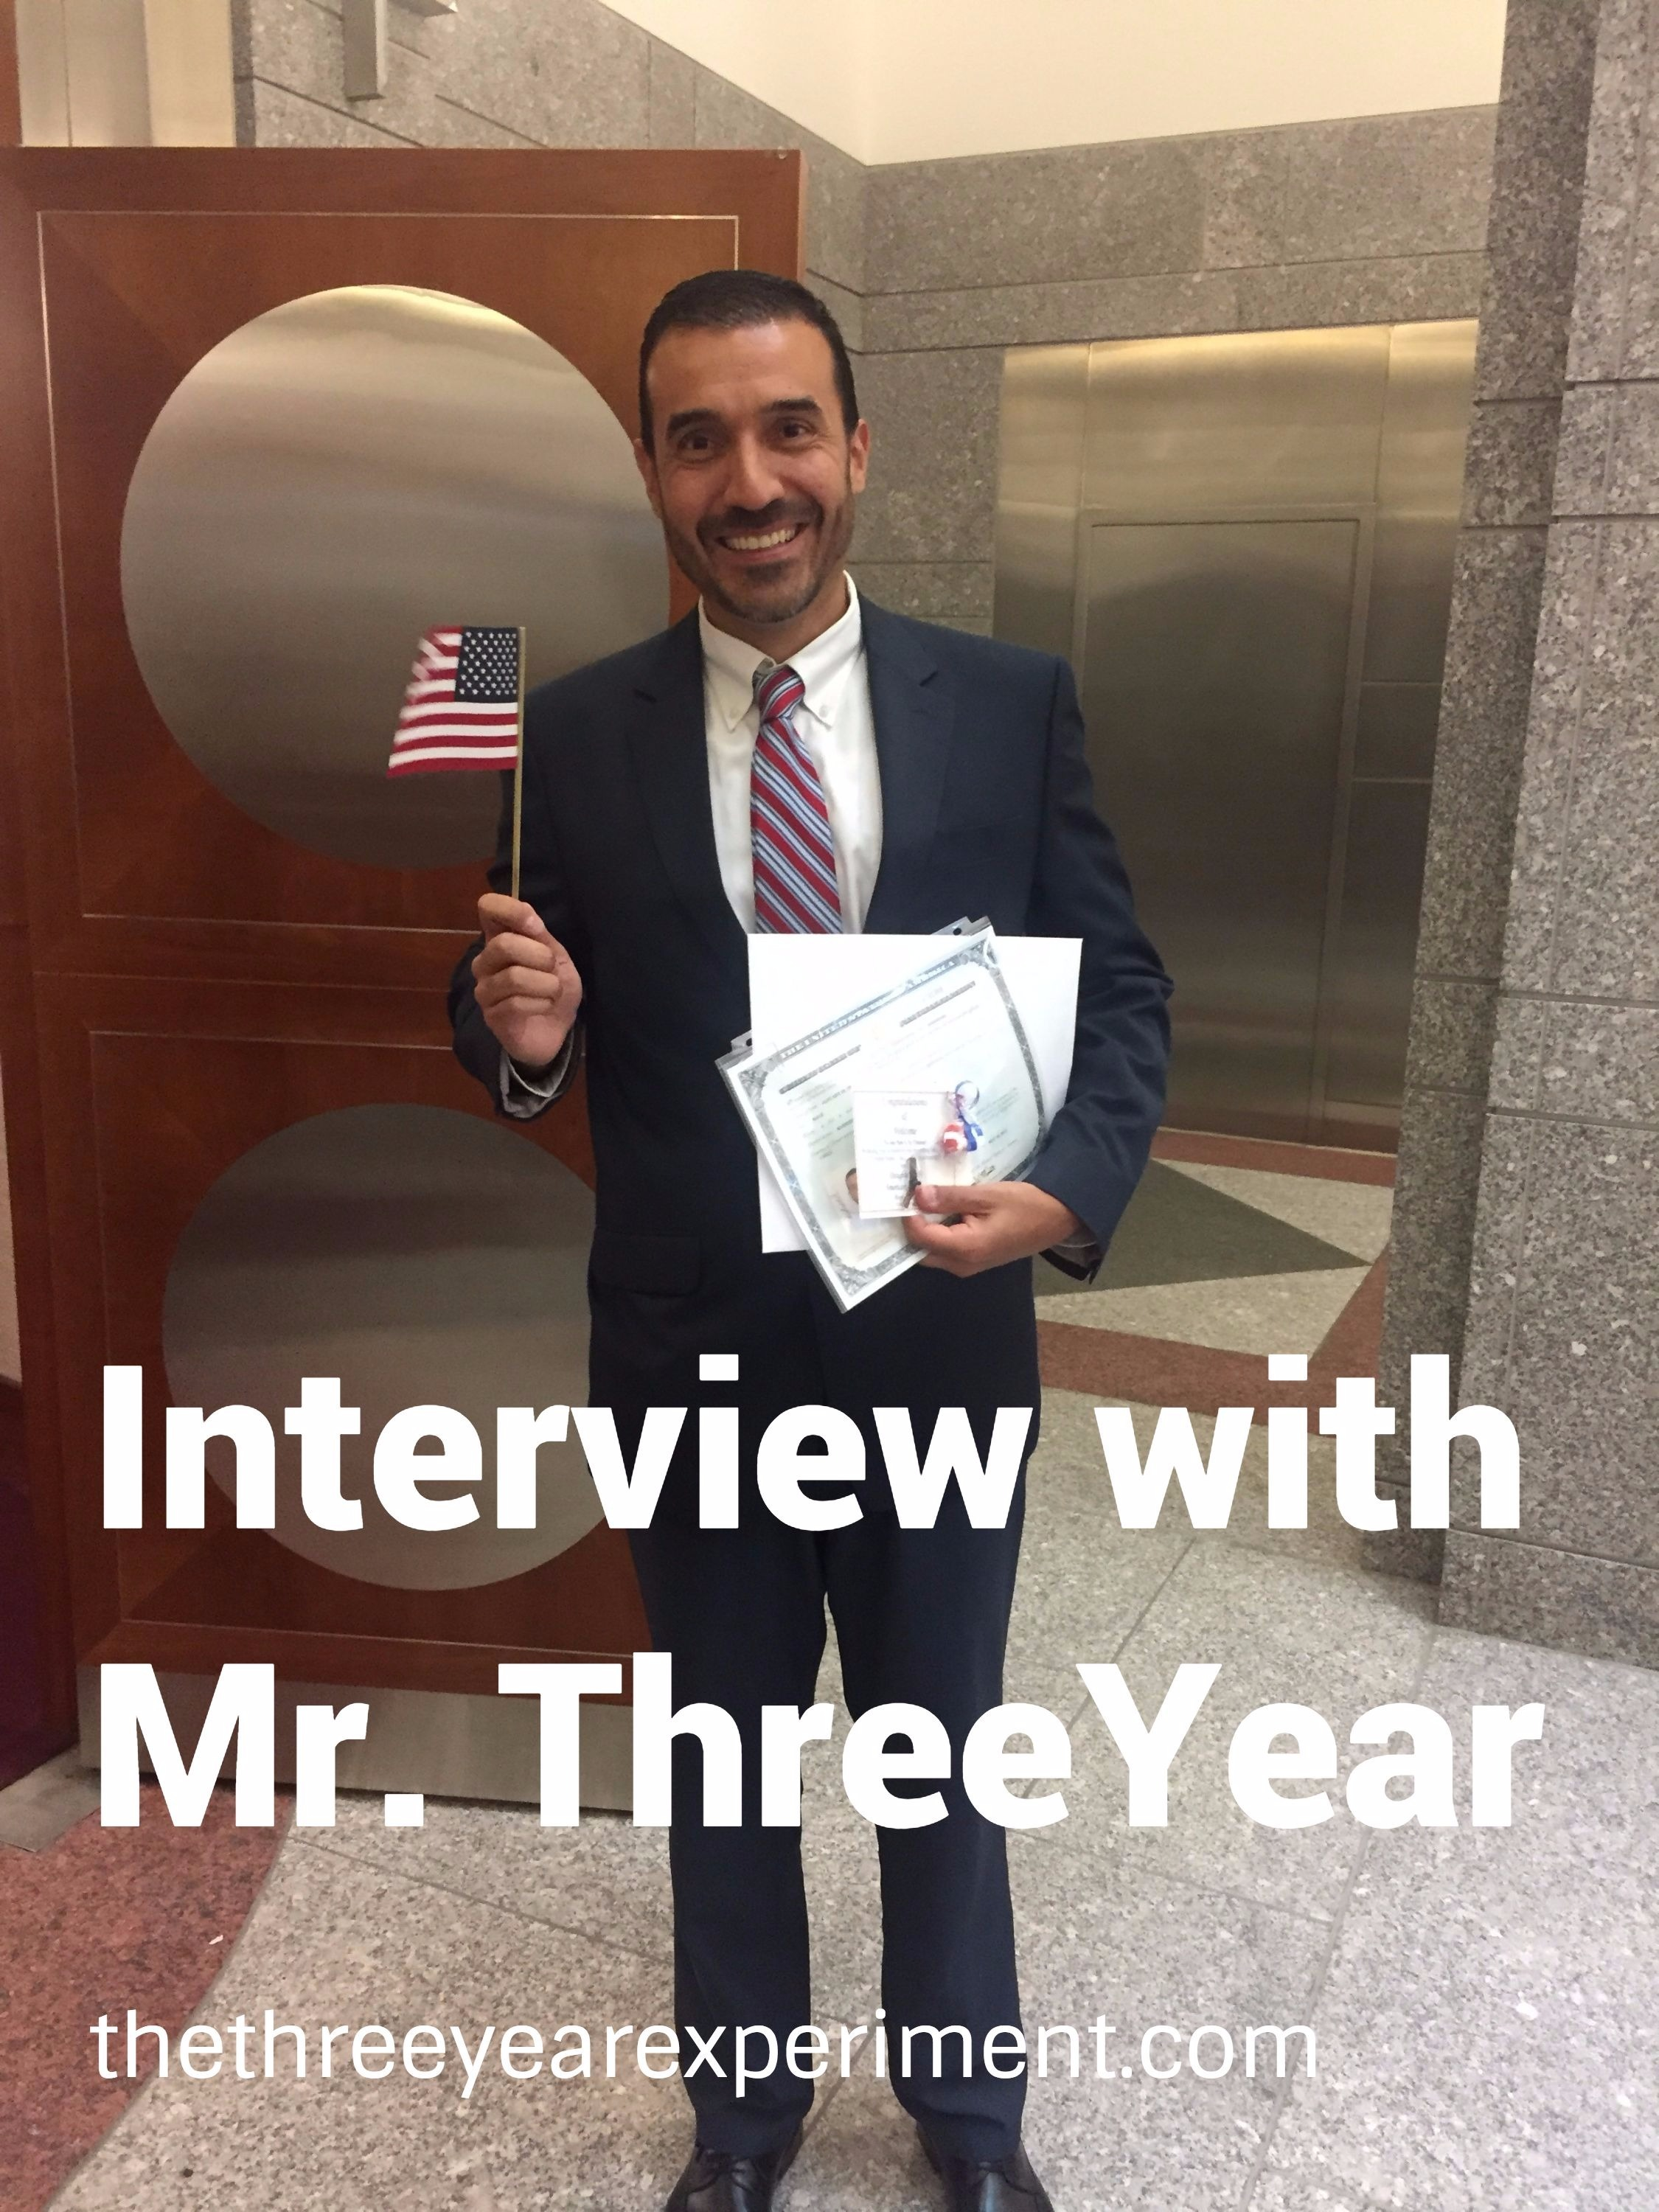 Interview with Mr. ThreeYear